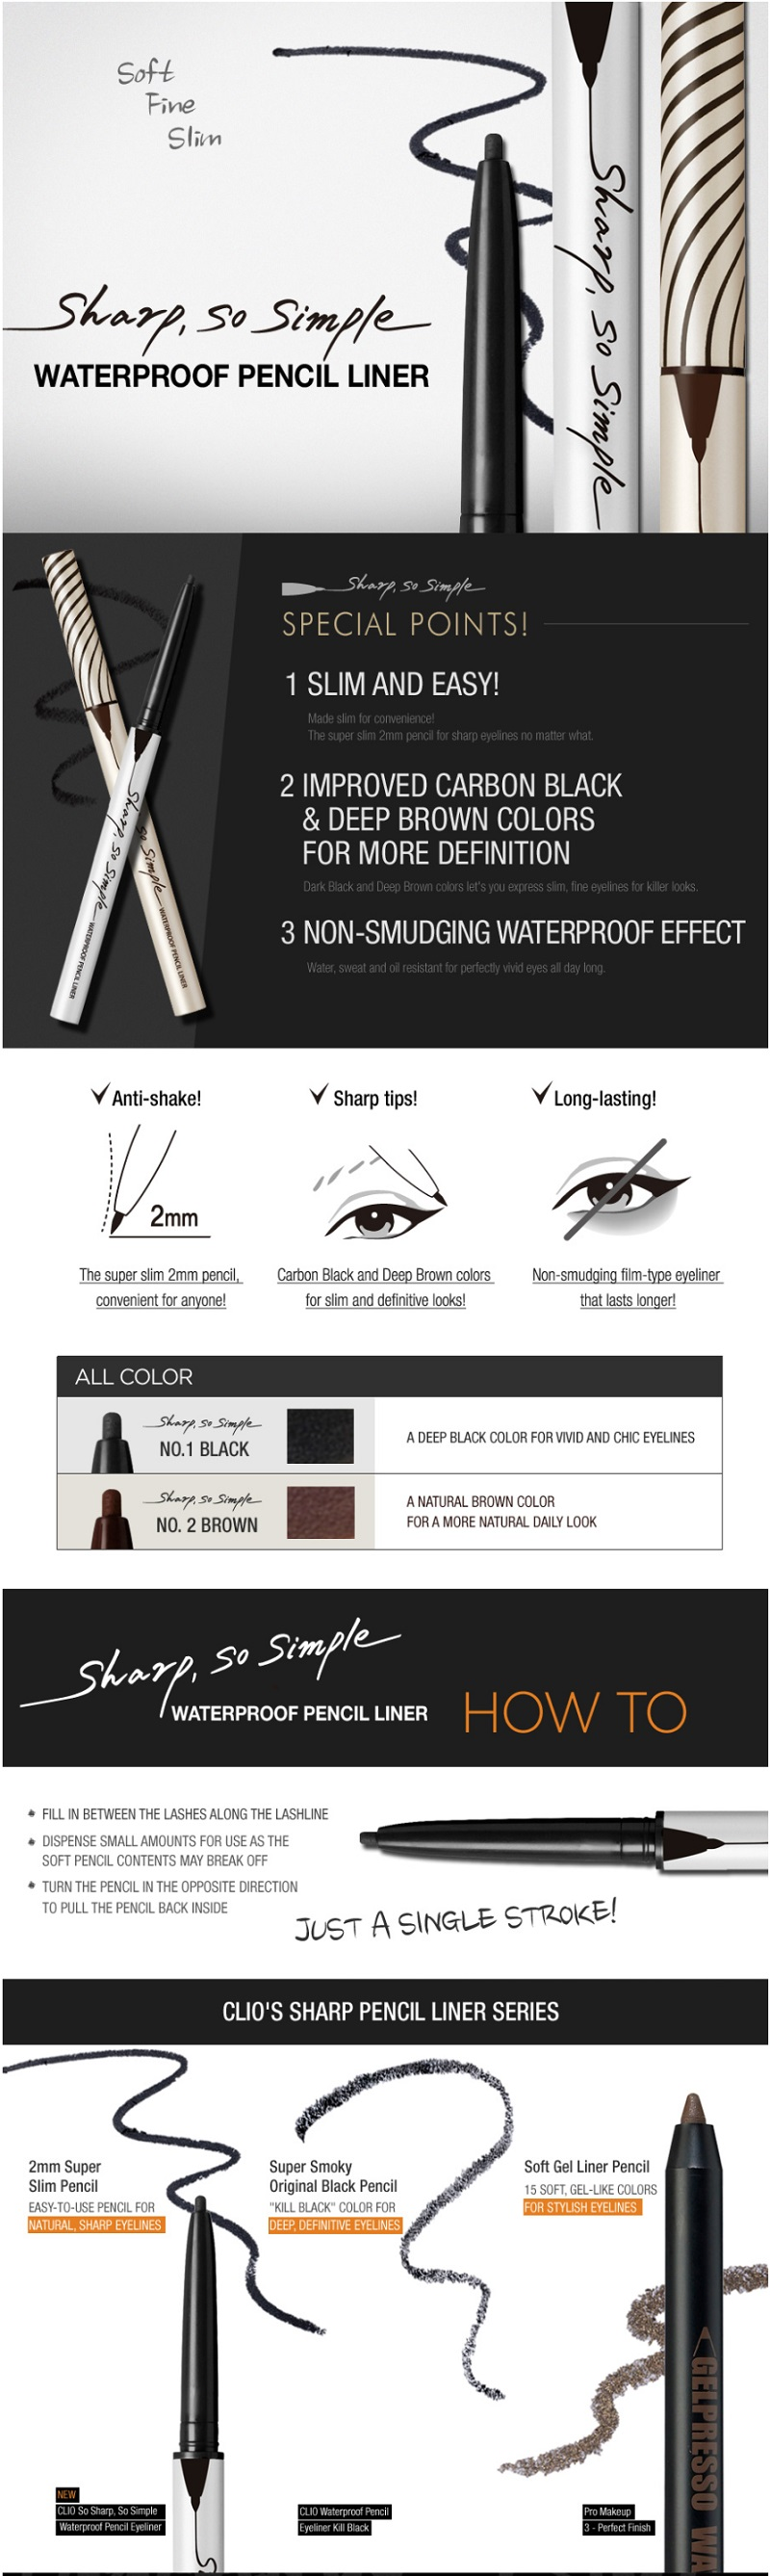 CLIO Sharp So Simple Waterproof Pen Liner